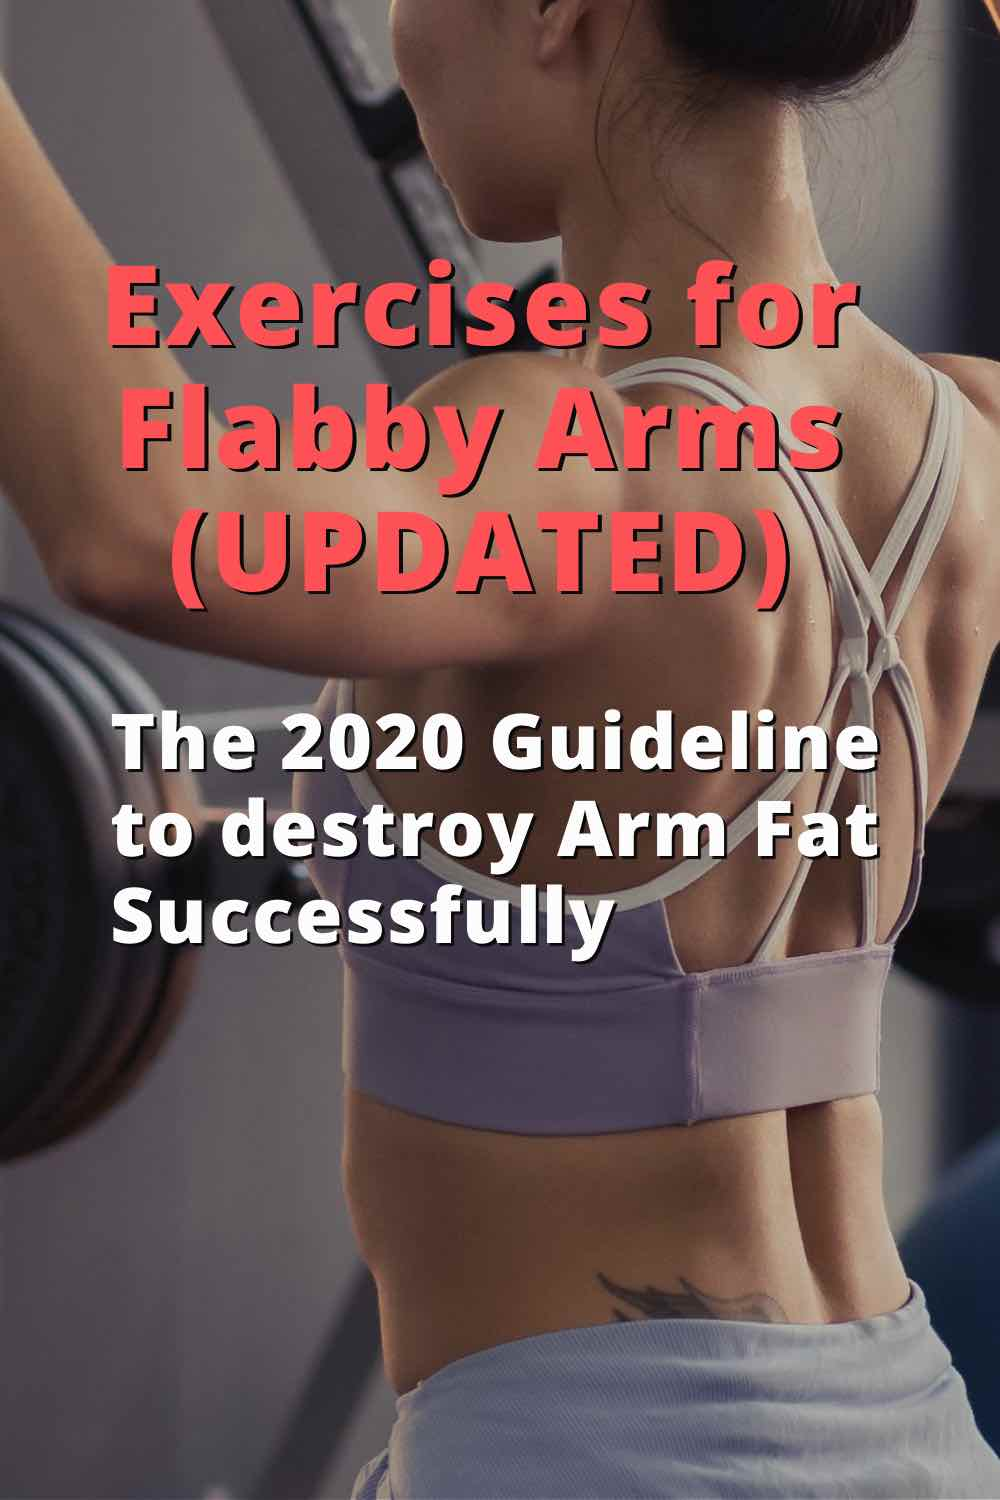 The best exercises for Flabby Arms